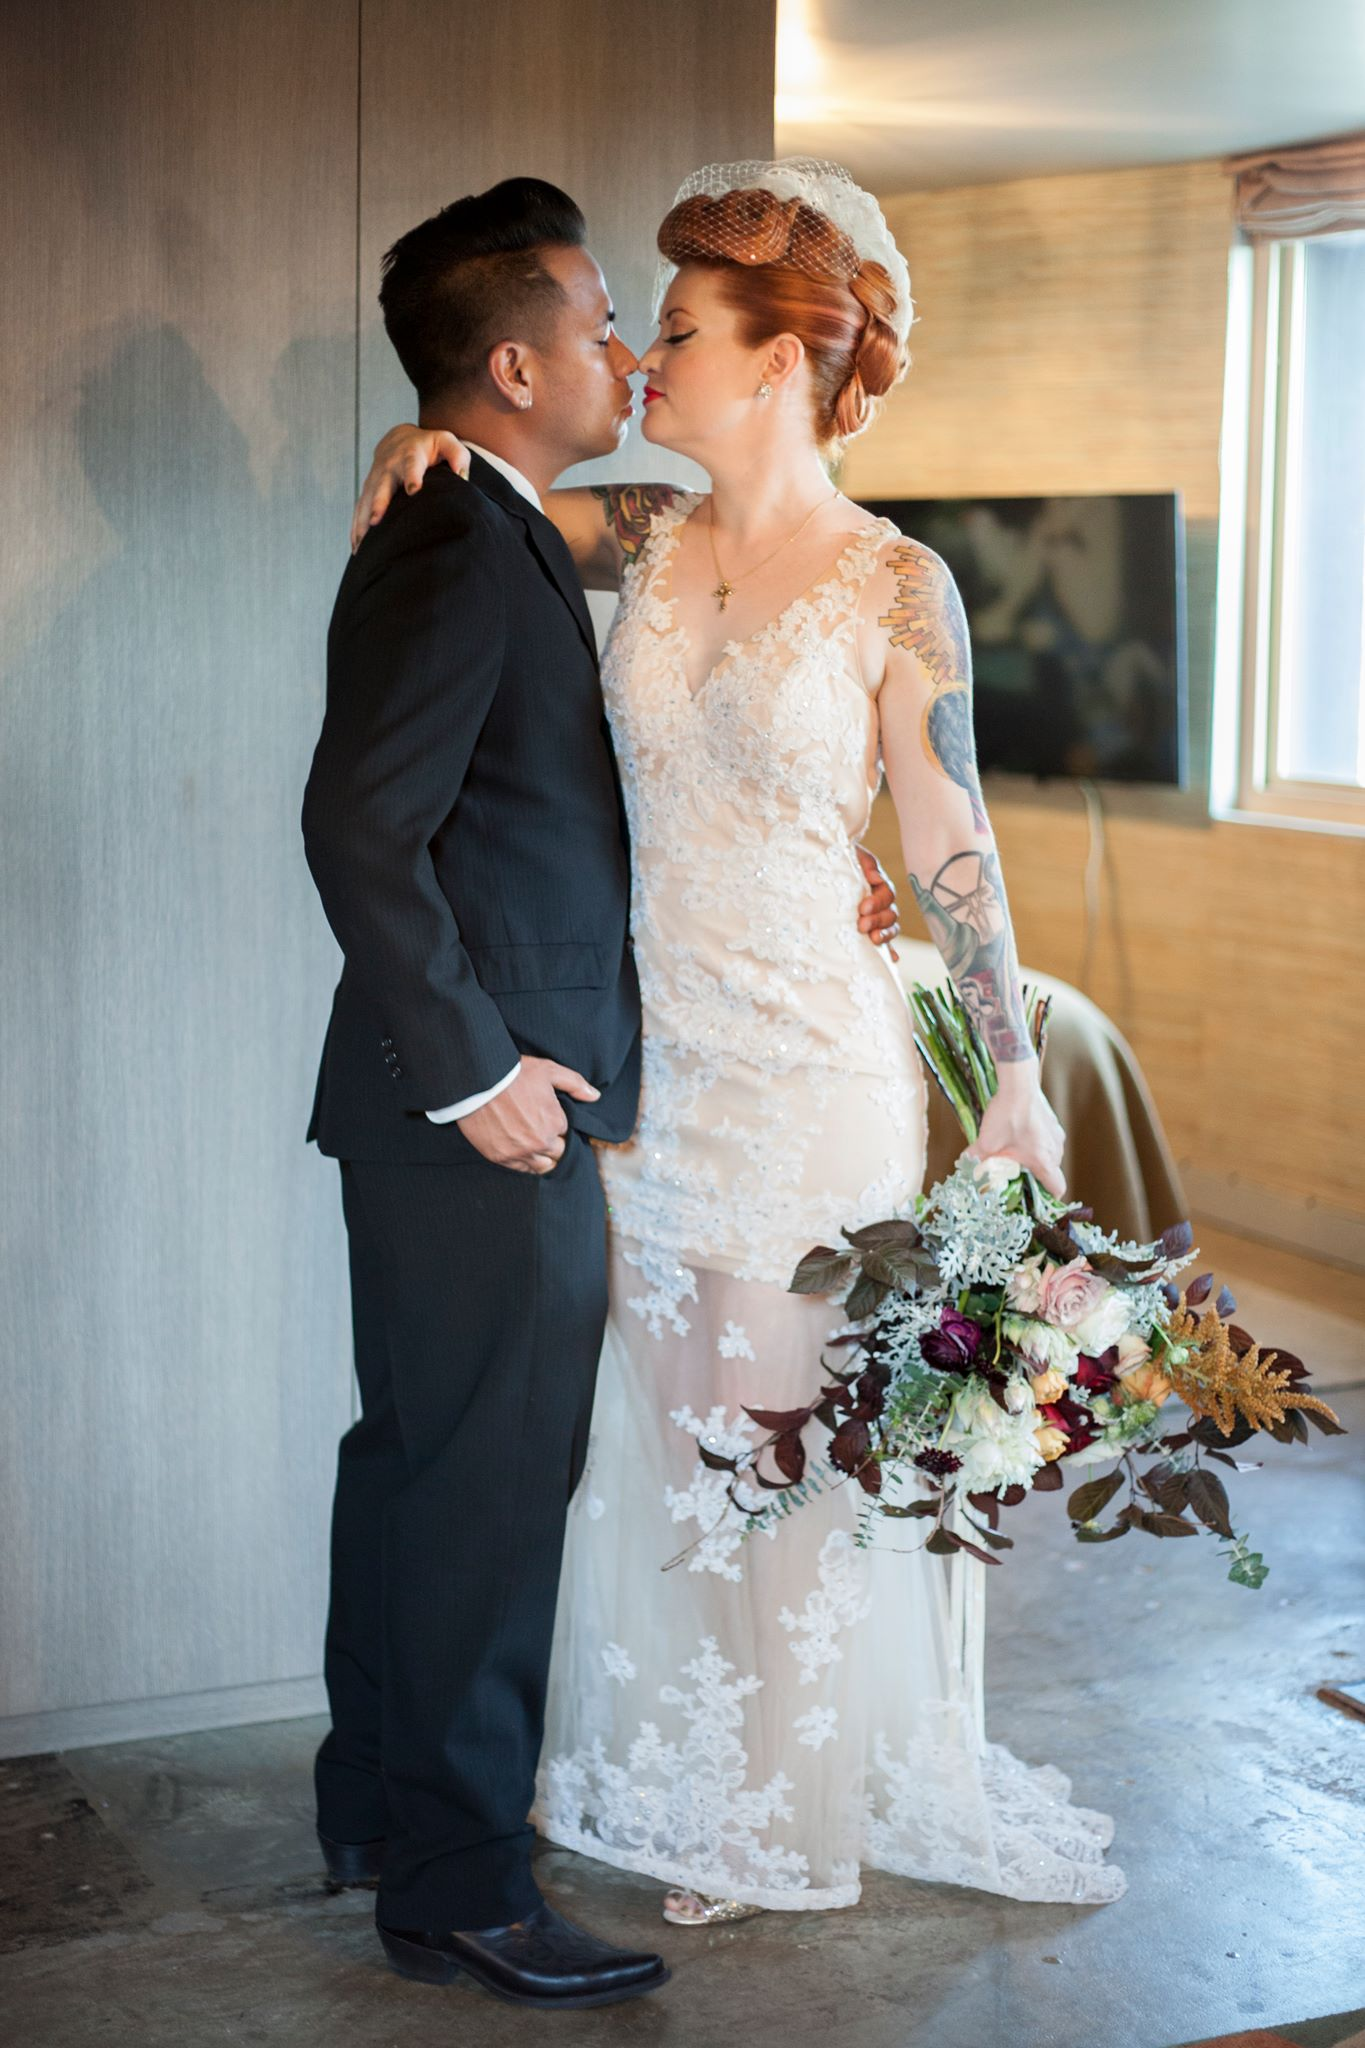 April & JC- Photo by Melinda Sanders